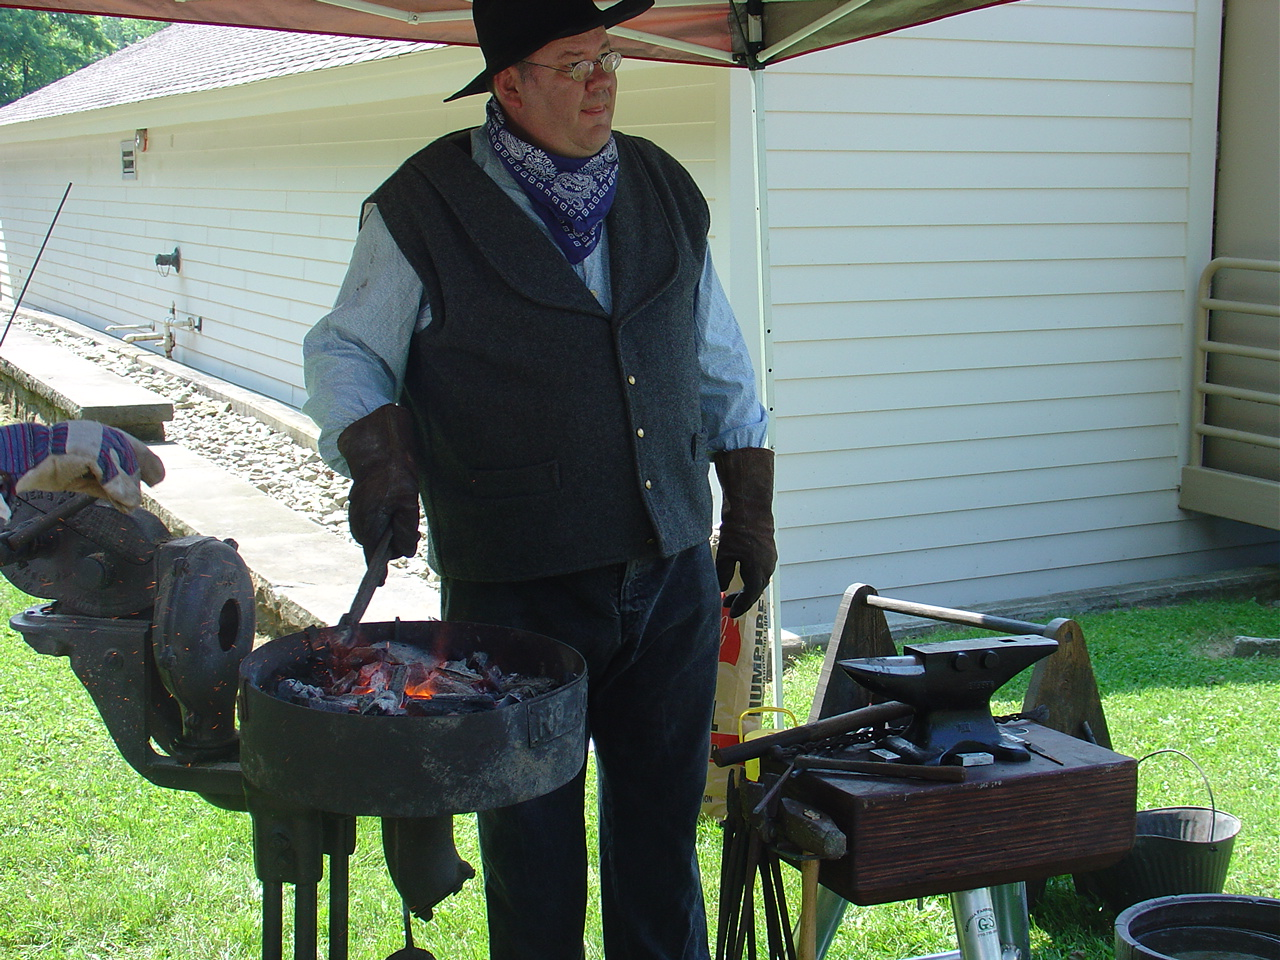 Blacksmith Paul from Greenwood Furnace State Park